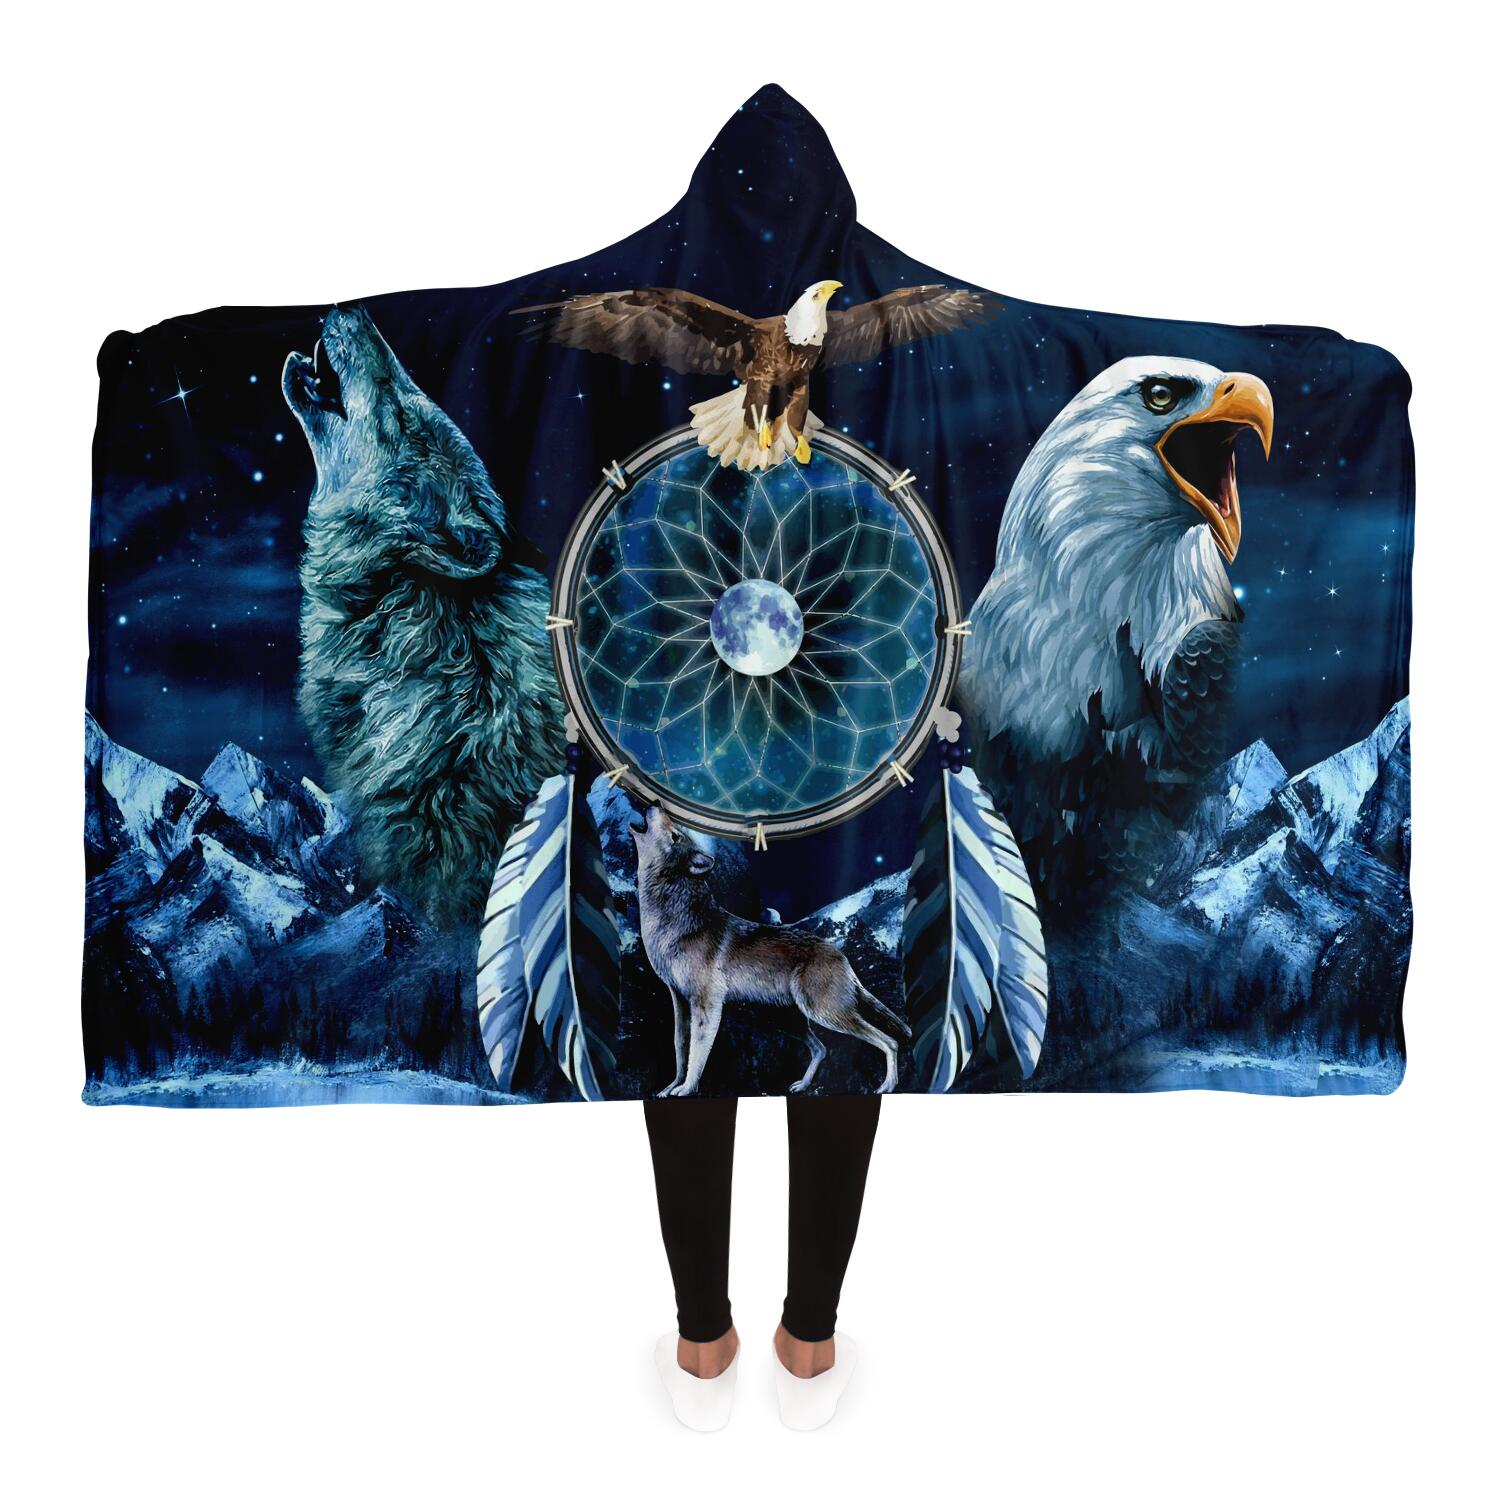 Spirit Animal Dreamcatcher Hoodie Blanket